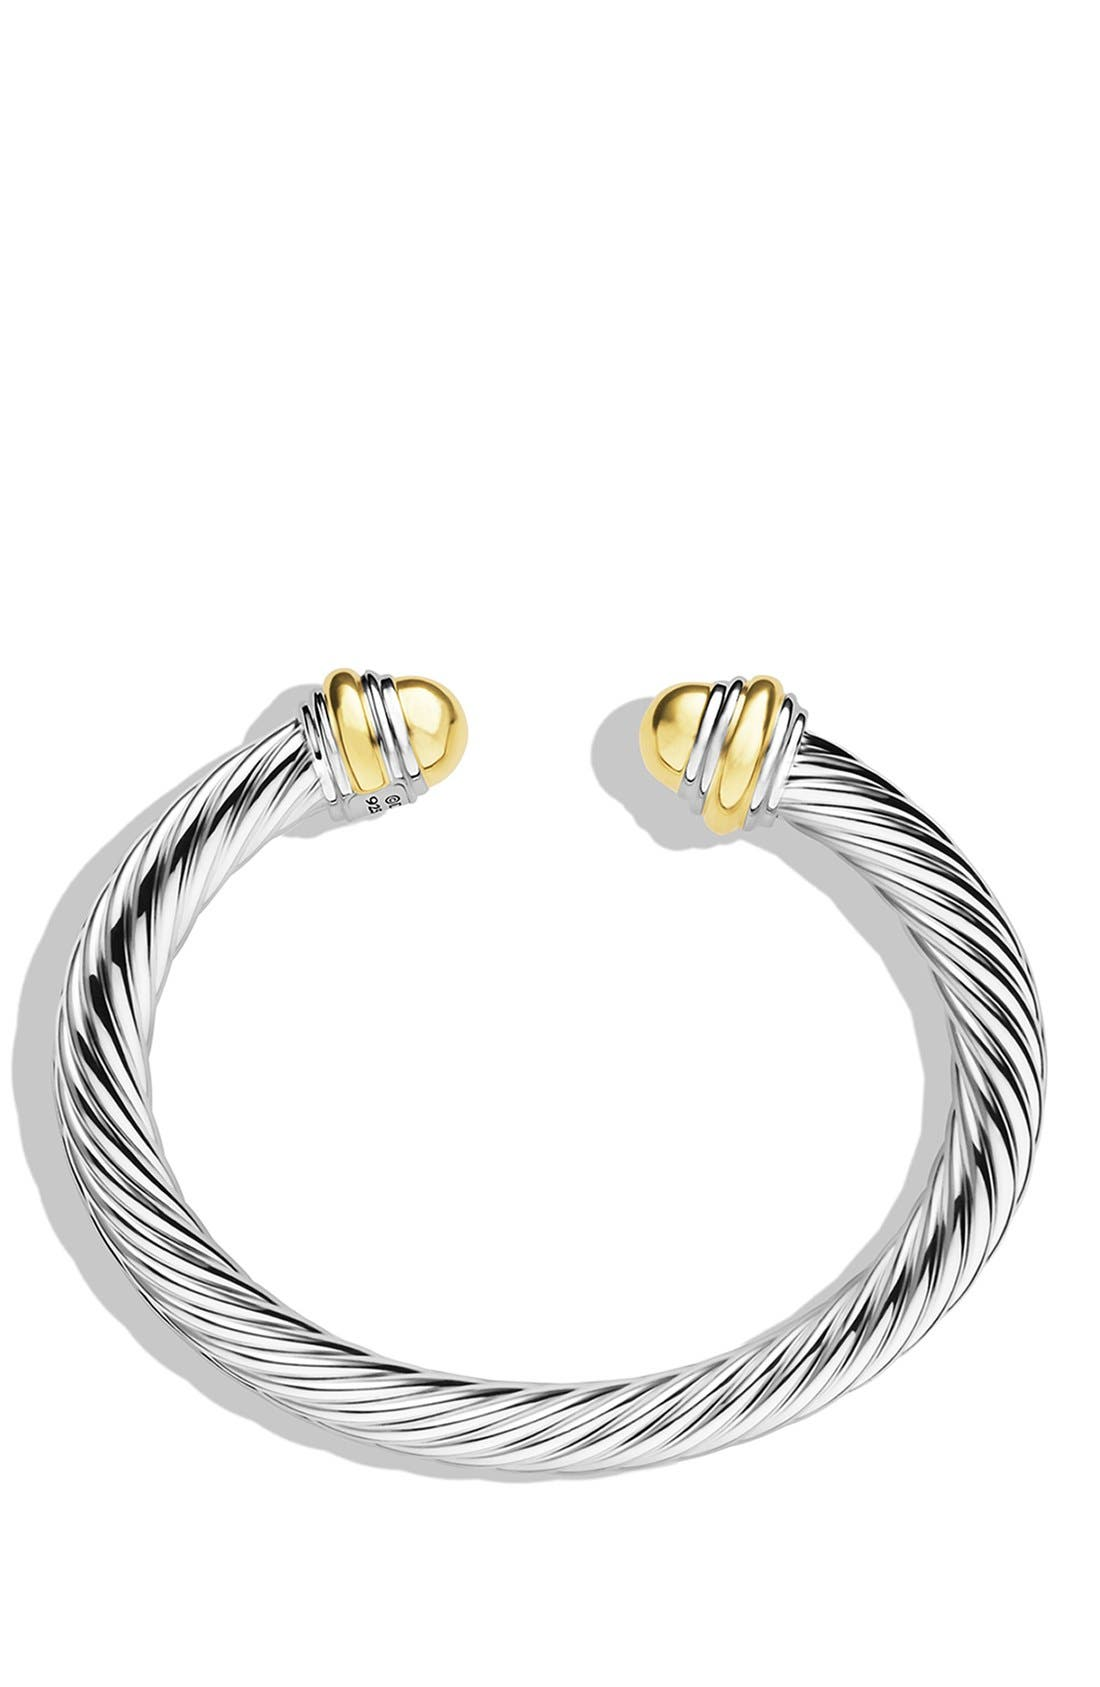 Cable Classics Bracelet with 14K Gold, 7mm,                             Alternate thumbnail 3, color,                             GOLD DOME